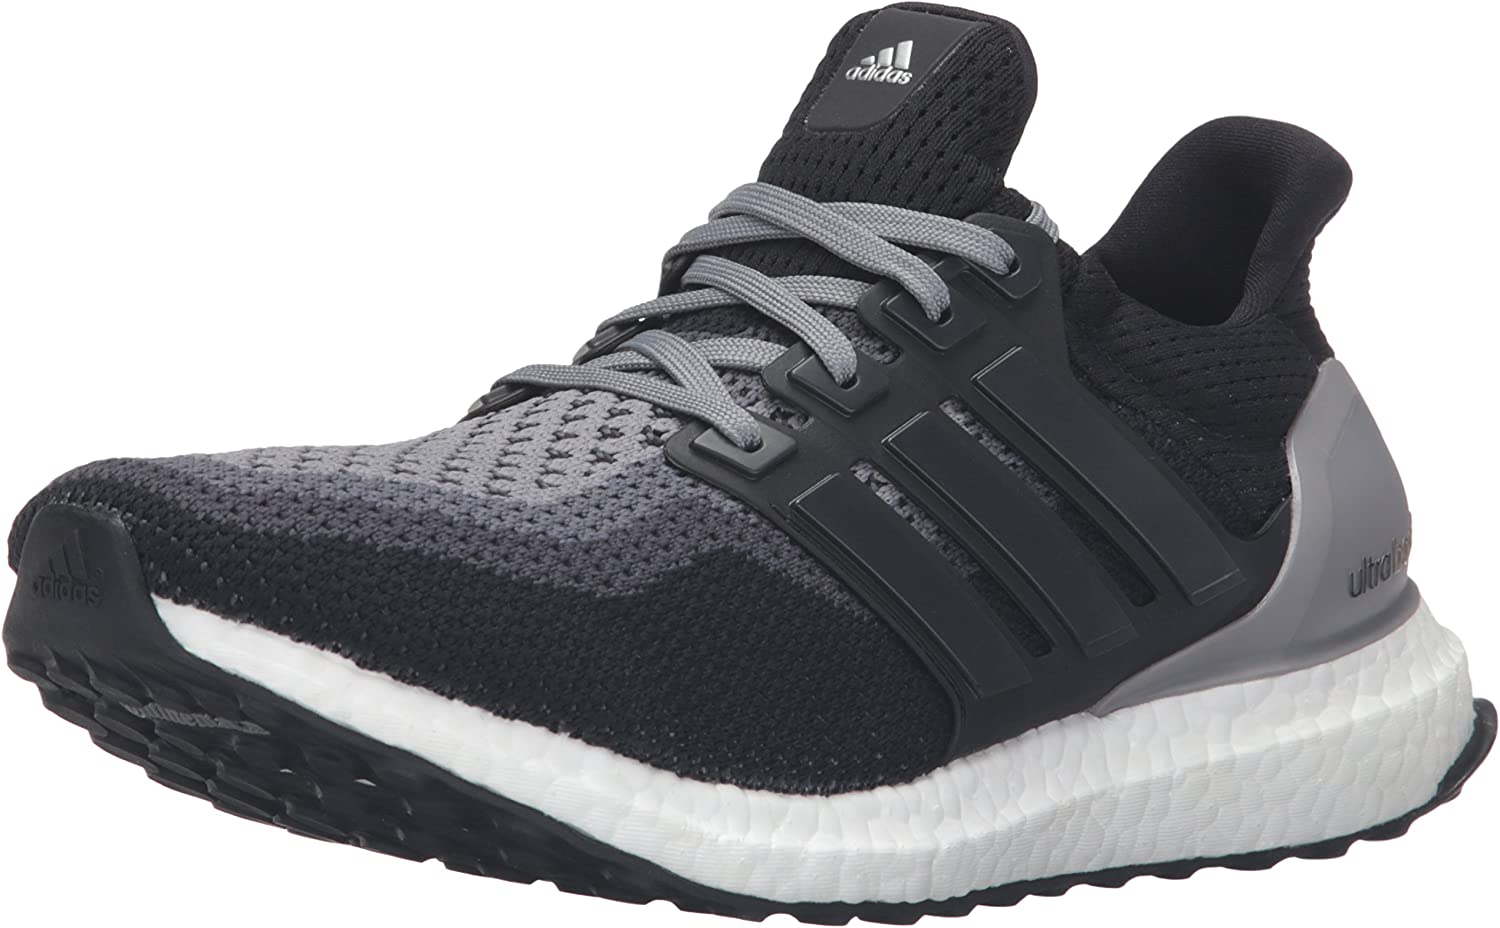 adidas Ultraboost 2.0 Shoe – Women s Running